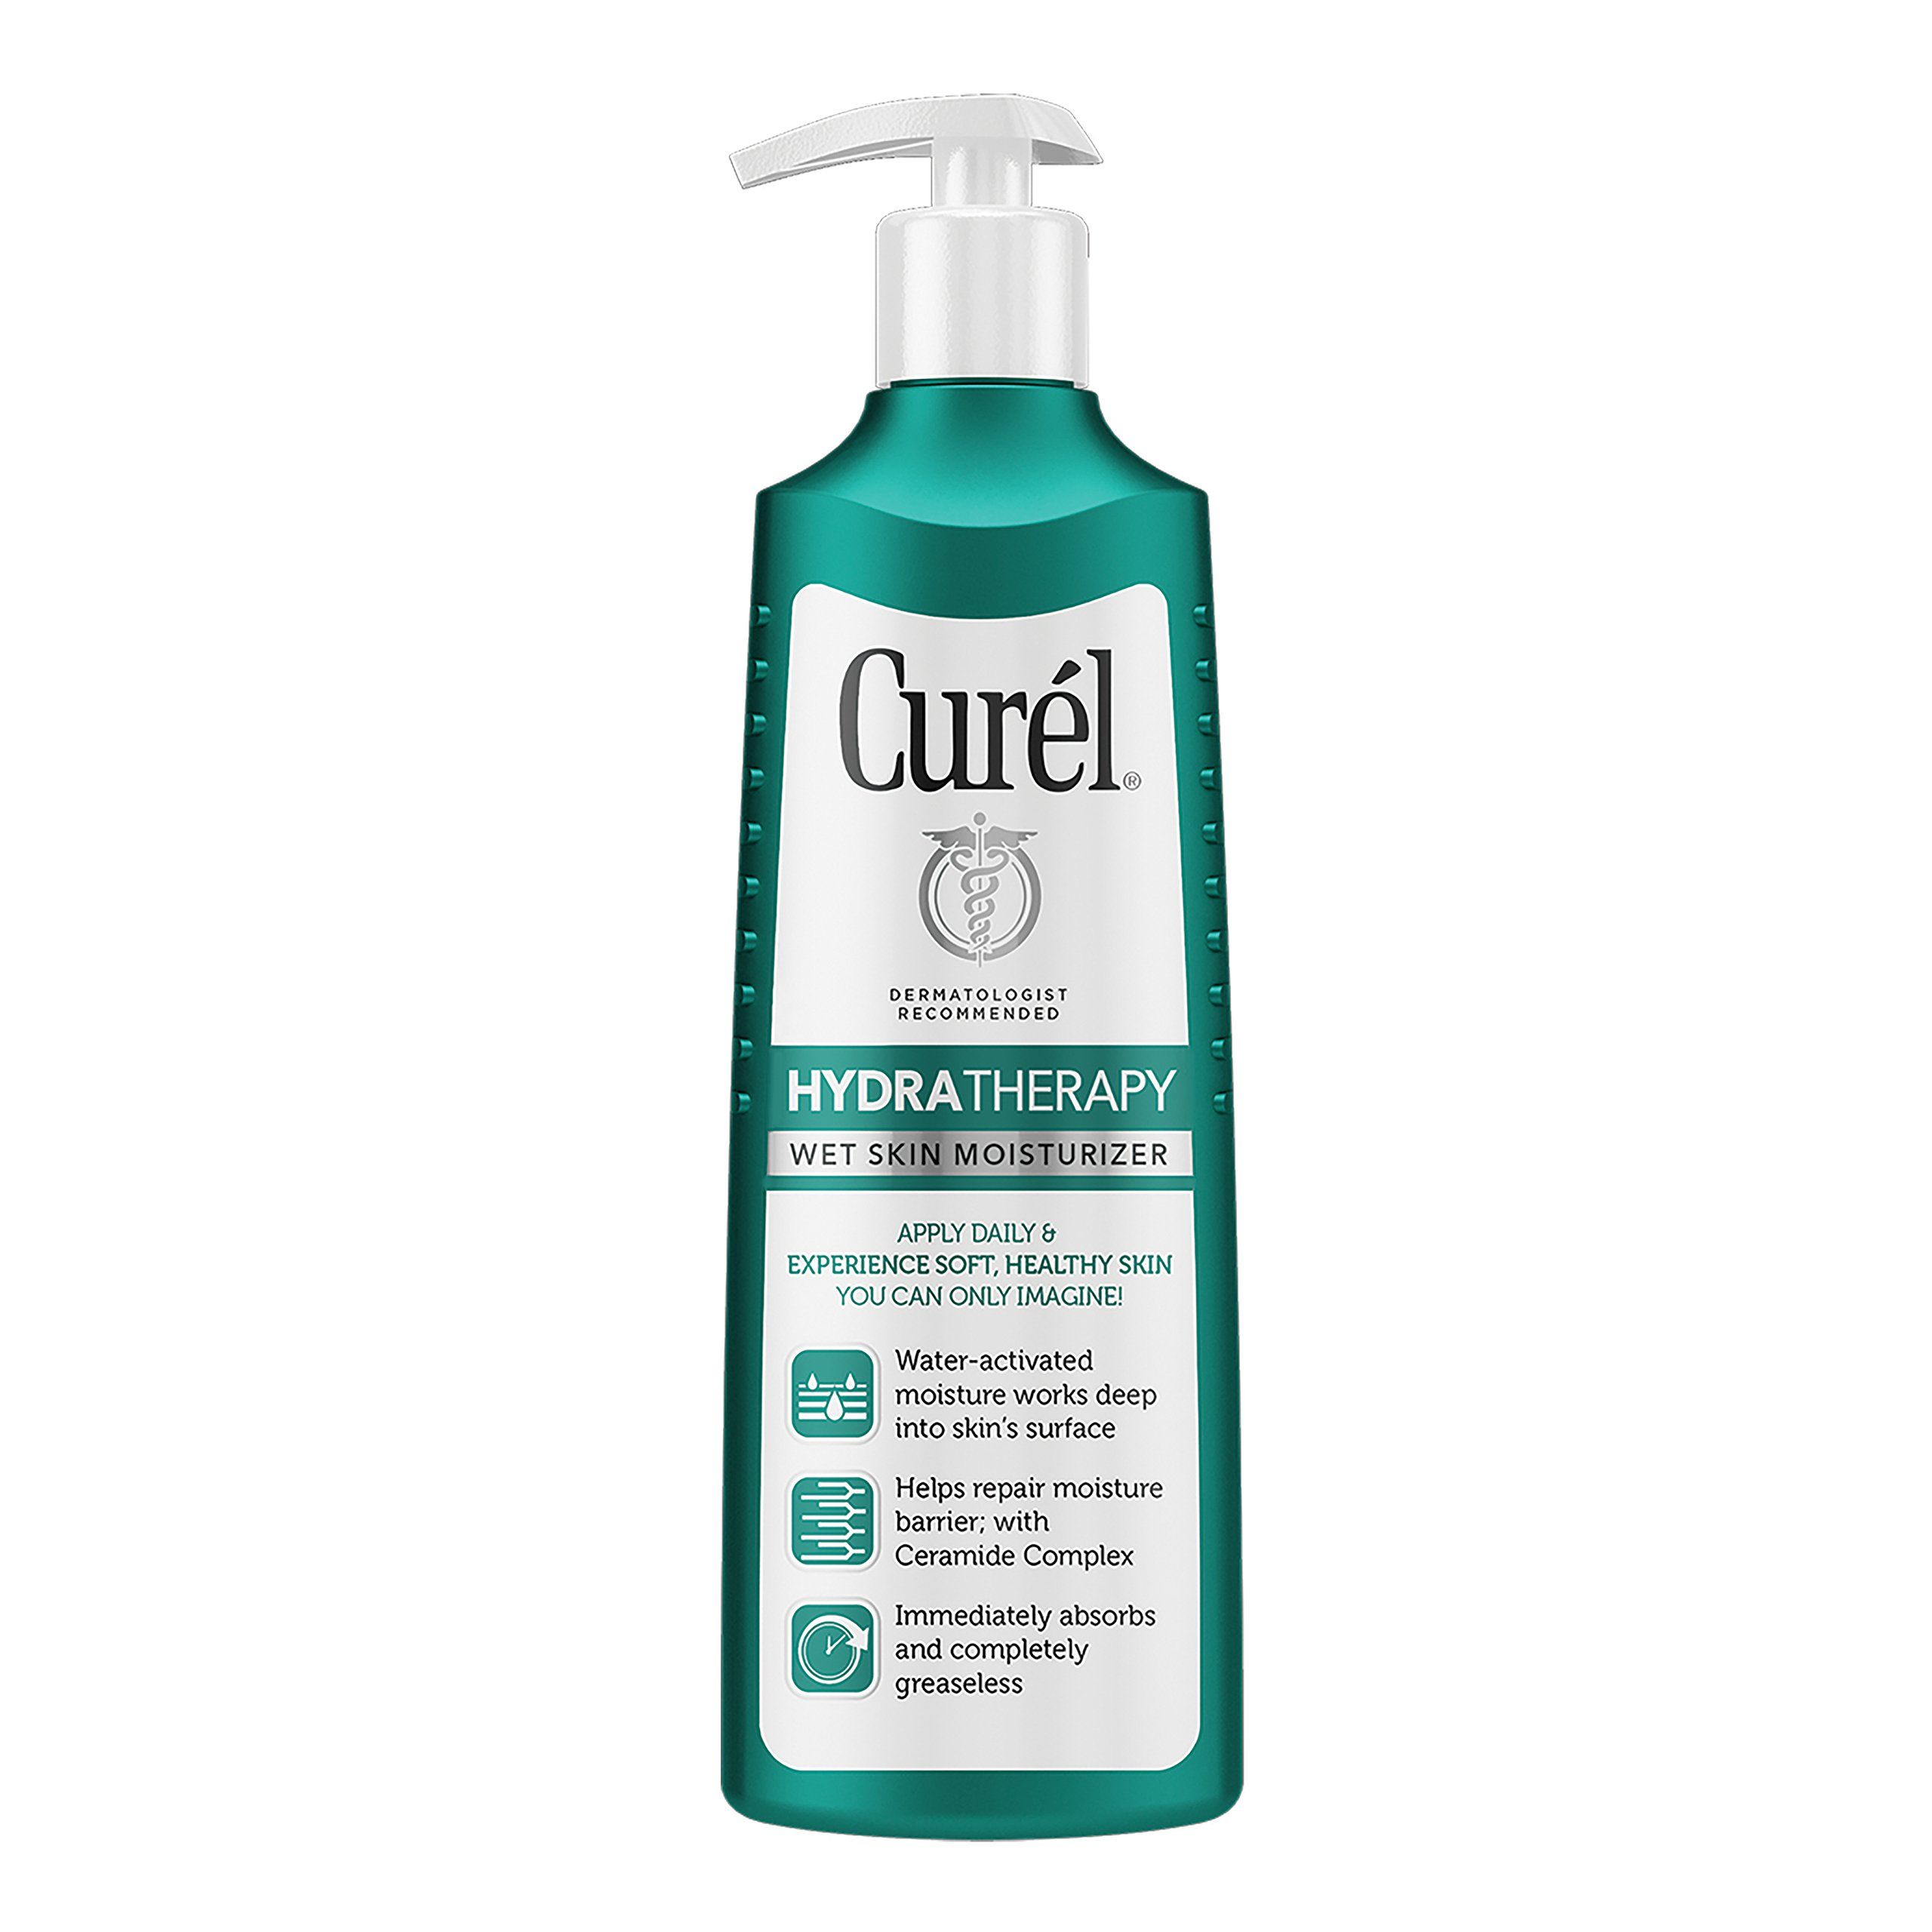 Curél Hydra Therapy Wet Skin Moisturizer for Dry & Extra-Dry Skin, 12 Ounce by Curél Skincare